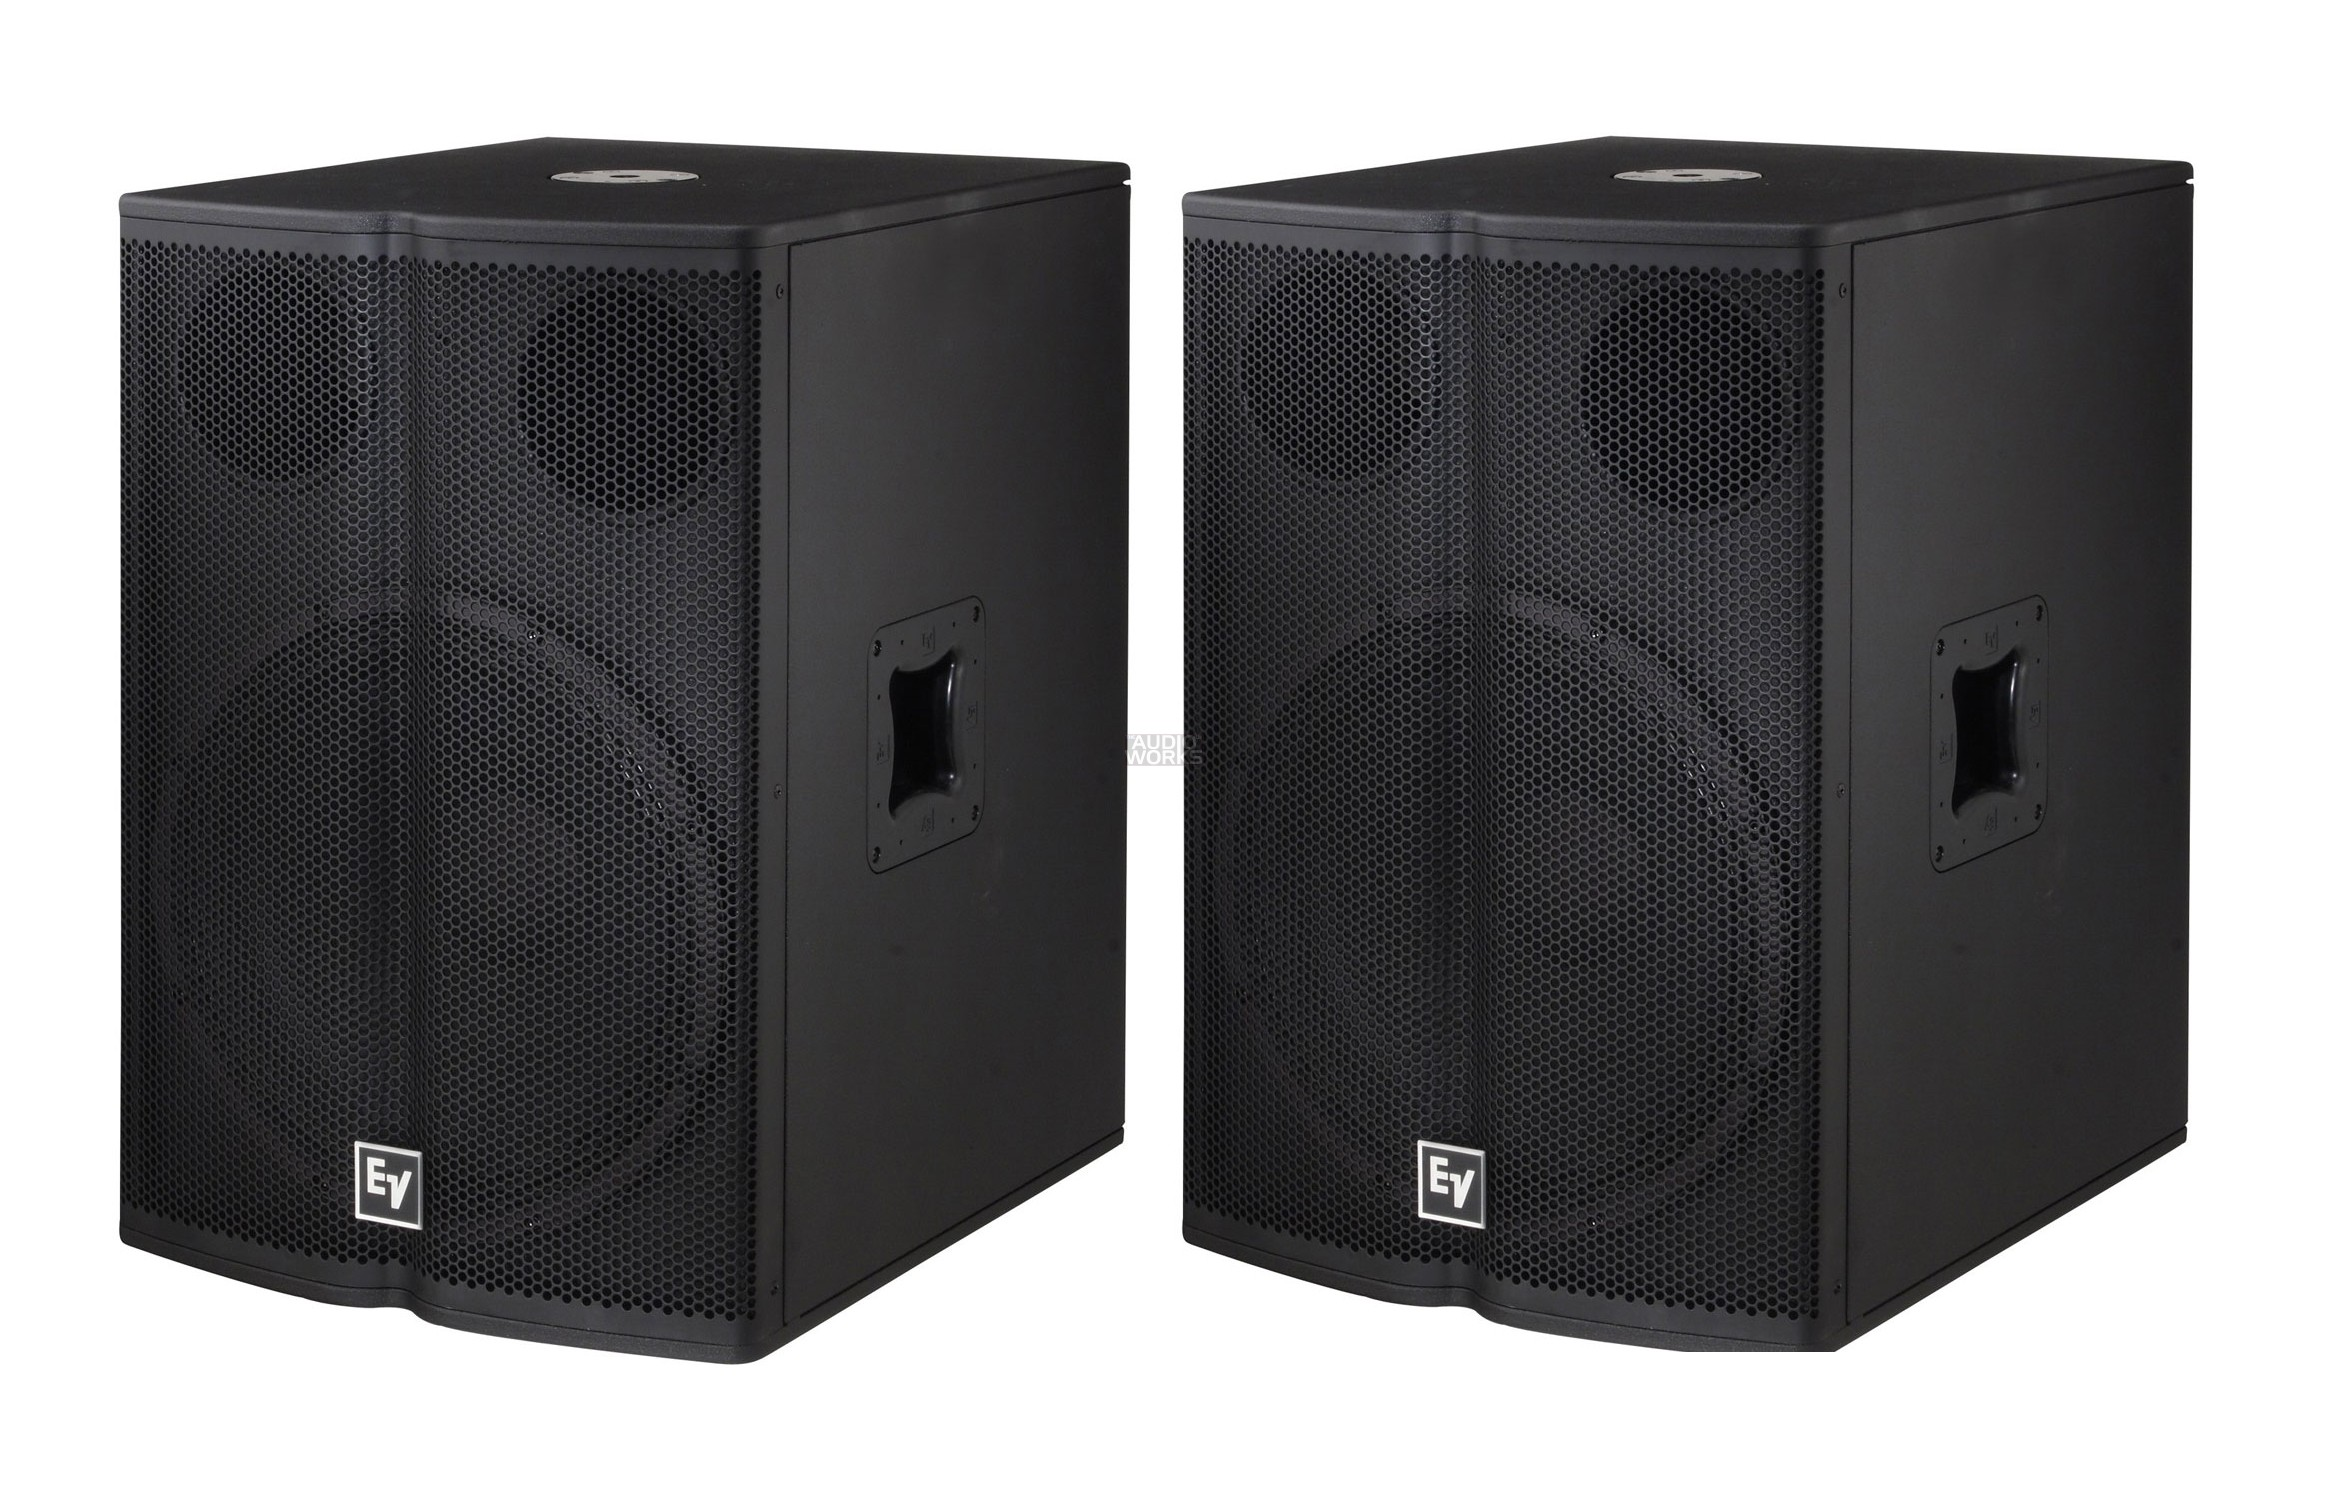 PAIR ELECTROVOICE TX1181 500W RMS PROFESSIONAL SUBWOOFERS